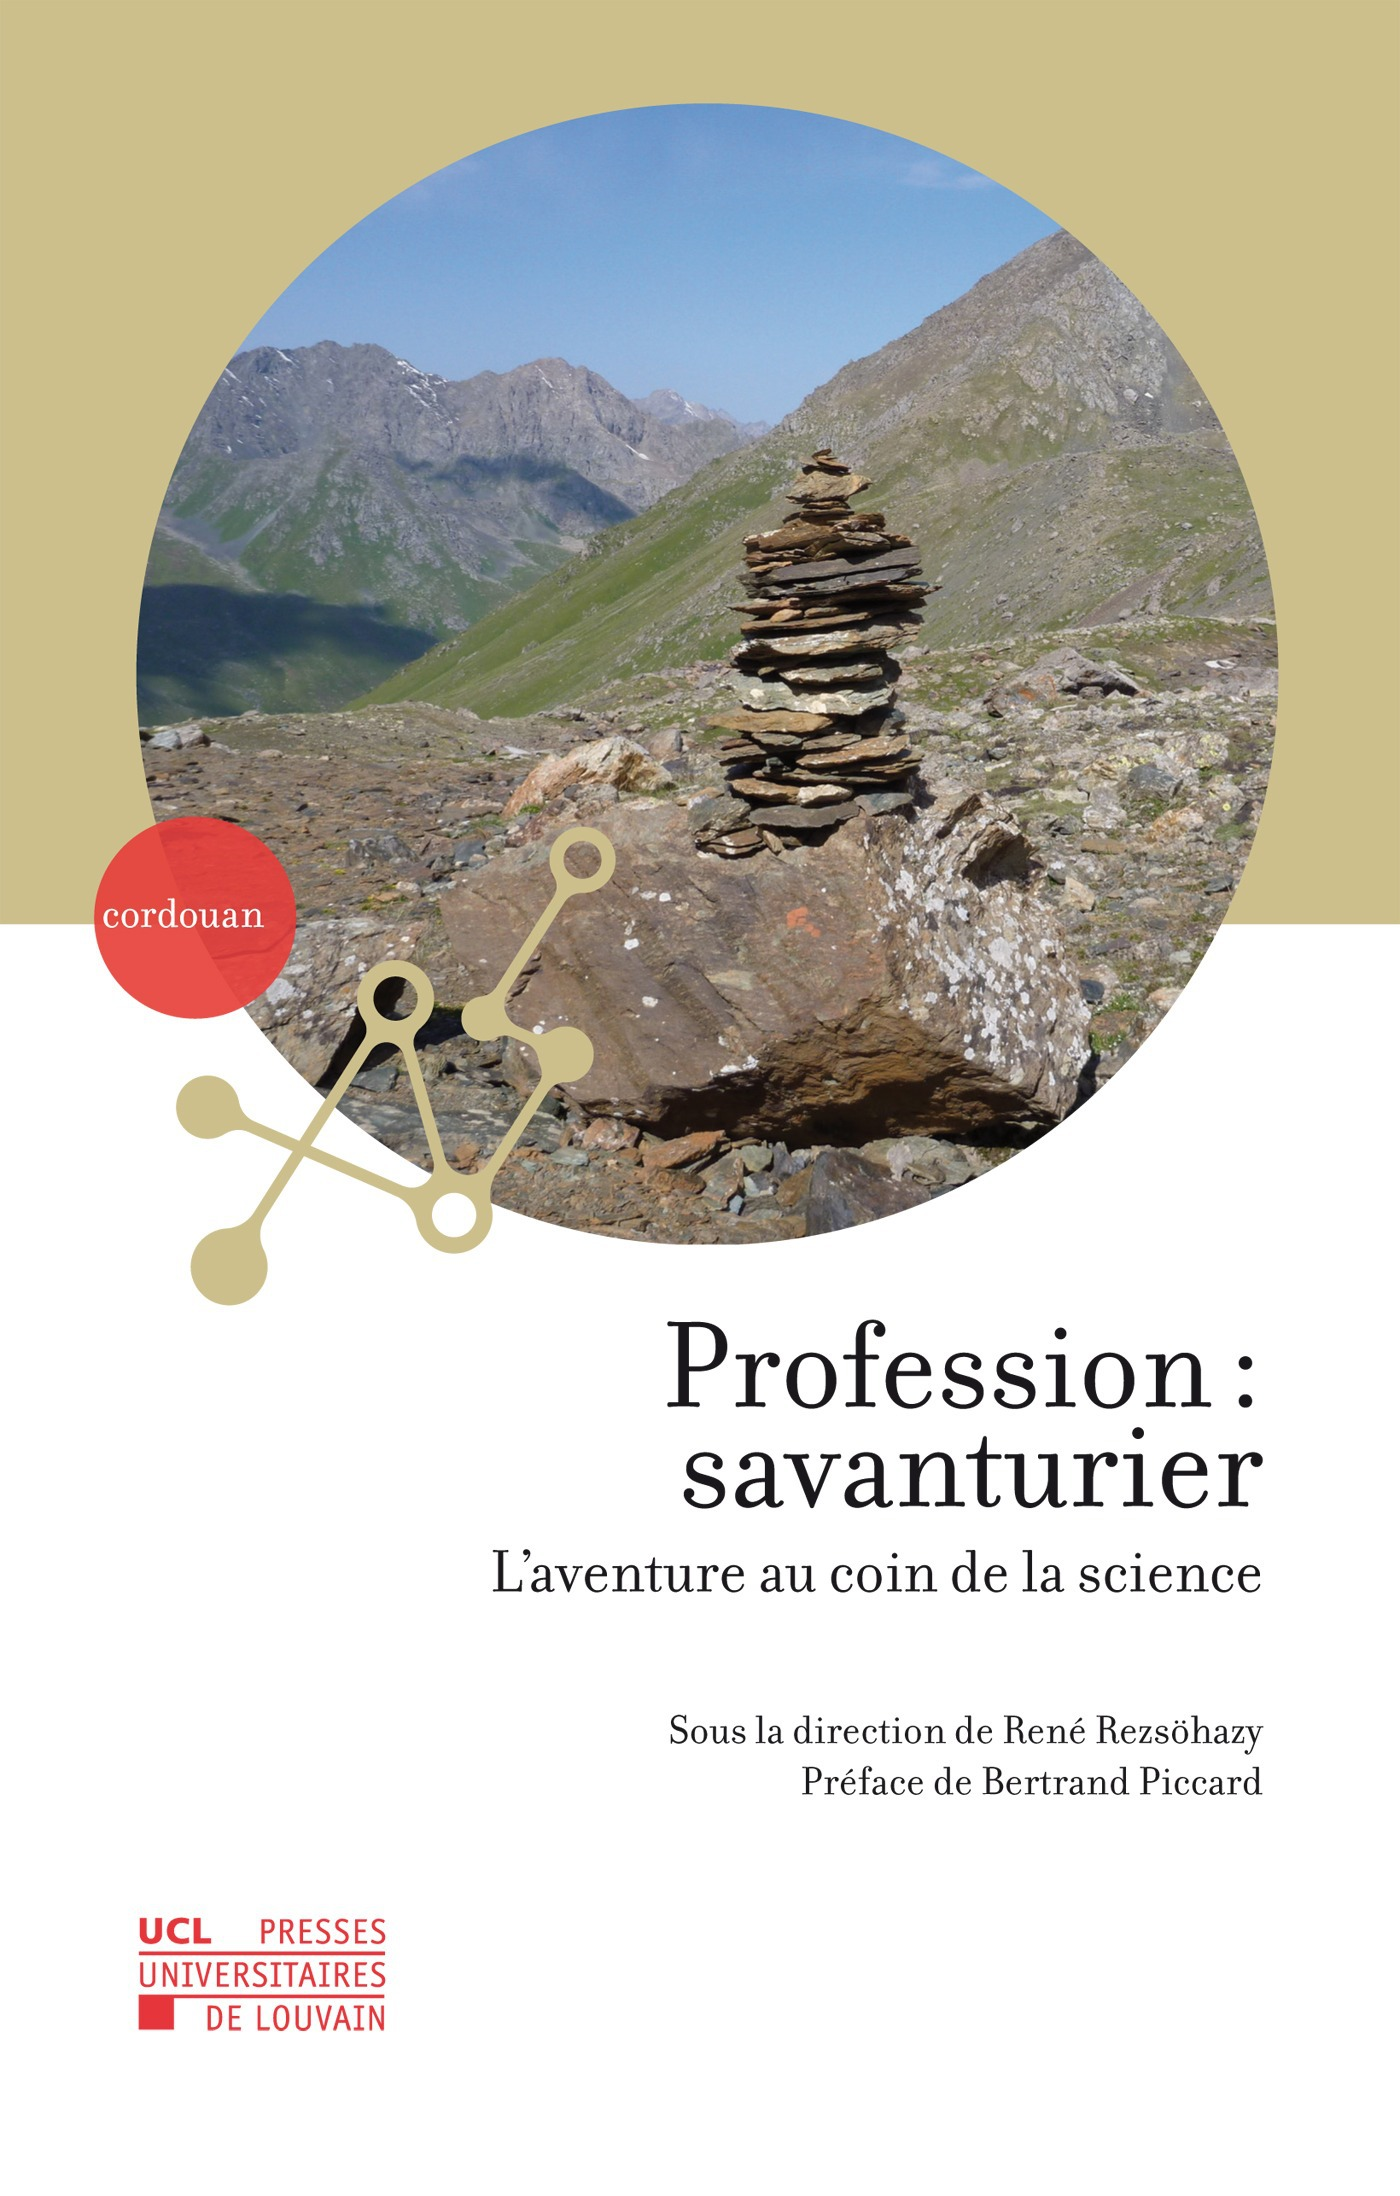 René Rezsöhazy Profession : savanturier